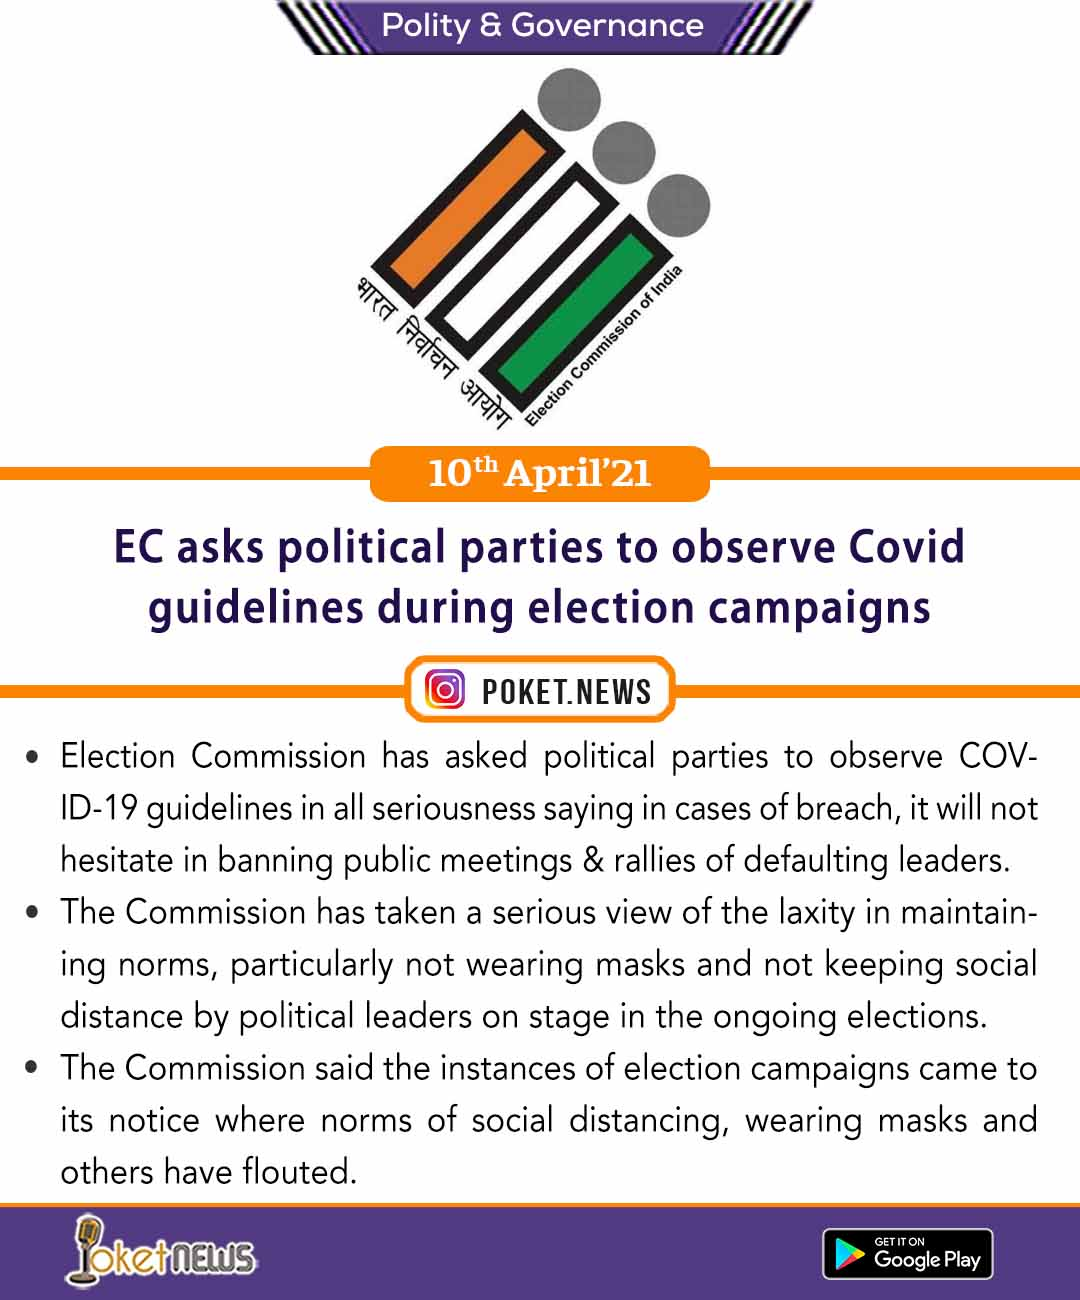 EC asks political parties to observe Covid guidelines during election campaigns